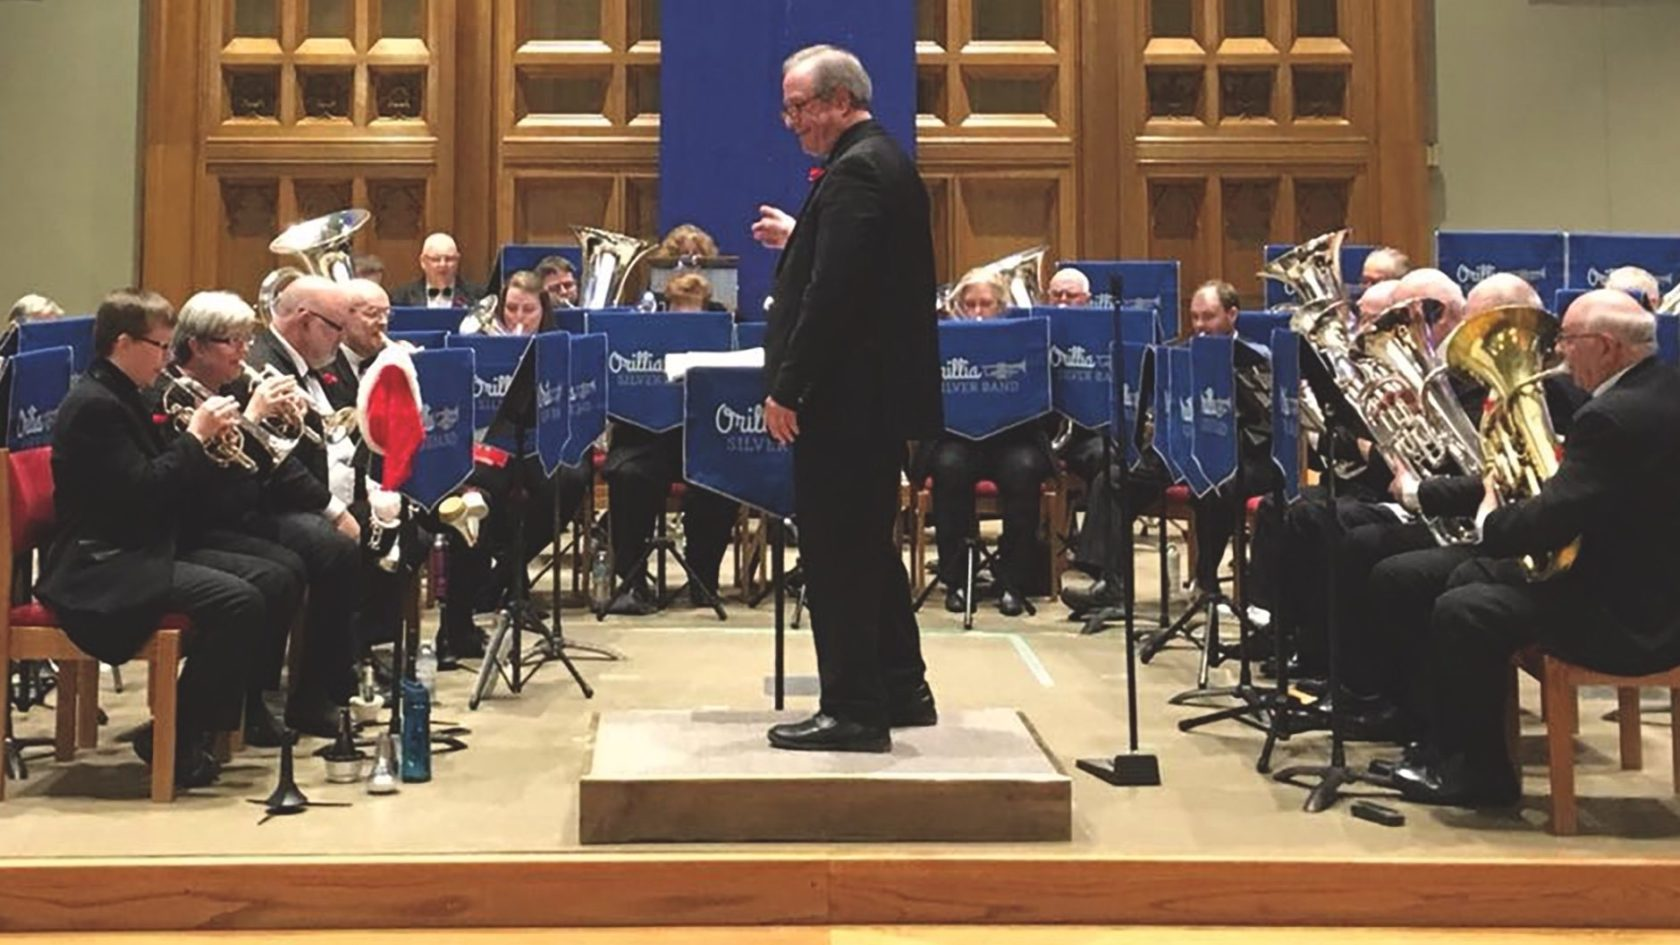 The Orillia Silver Band on stage at St. Paul's United in December 2017. (Photo courtesy St. Paul's United)